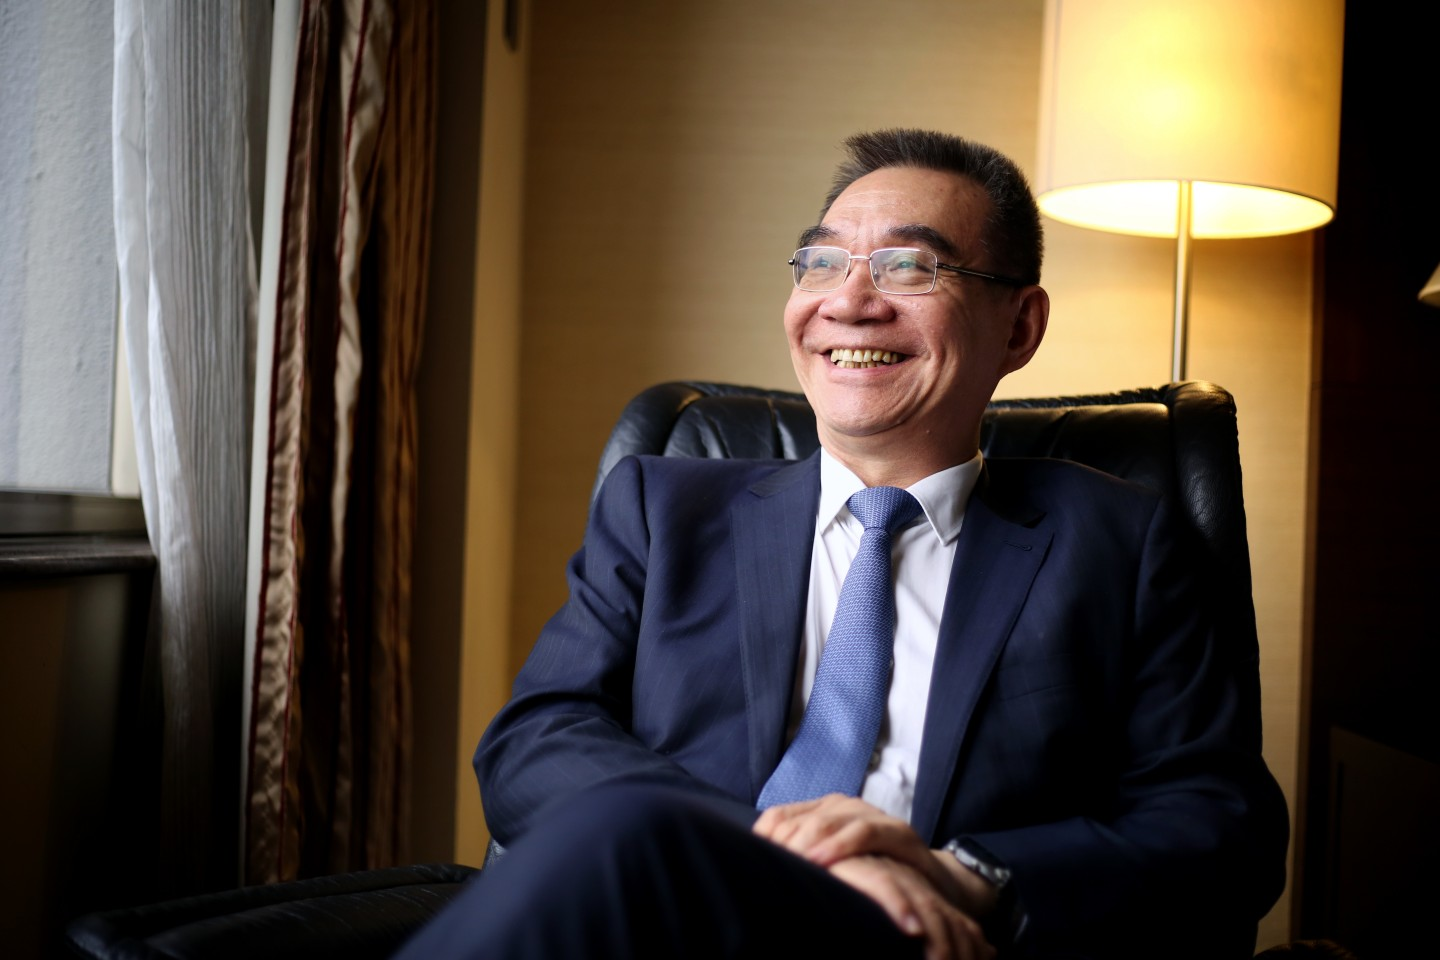 Lin is a renowned Chinese economist and former World Bank Chief Economist and Senior Vice President. (SPH)